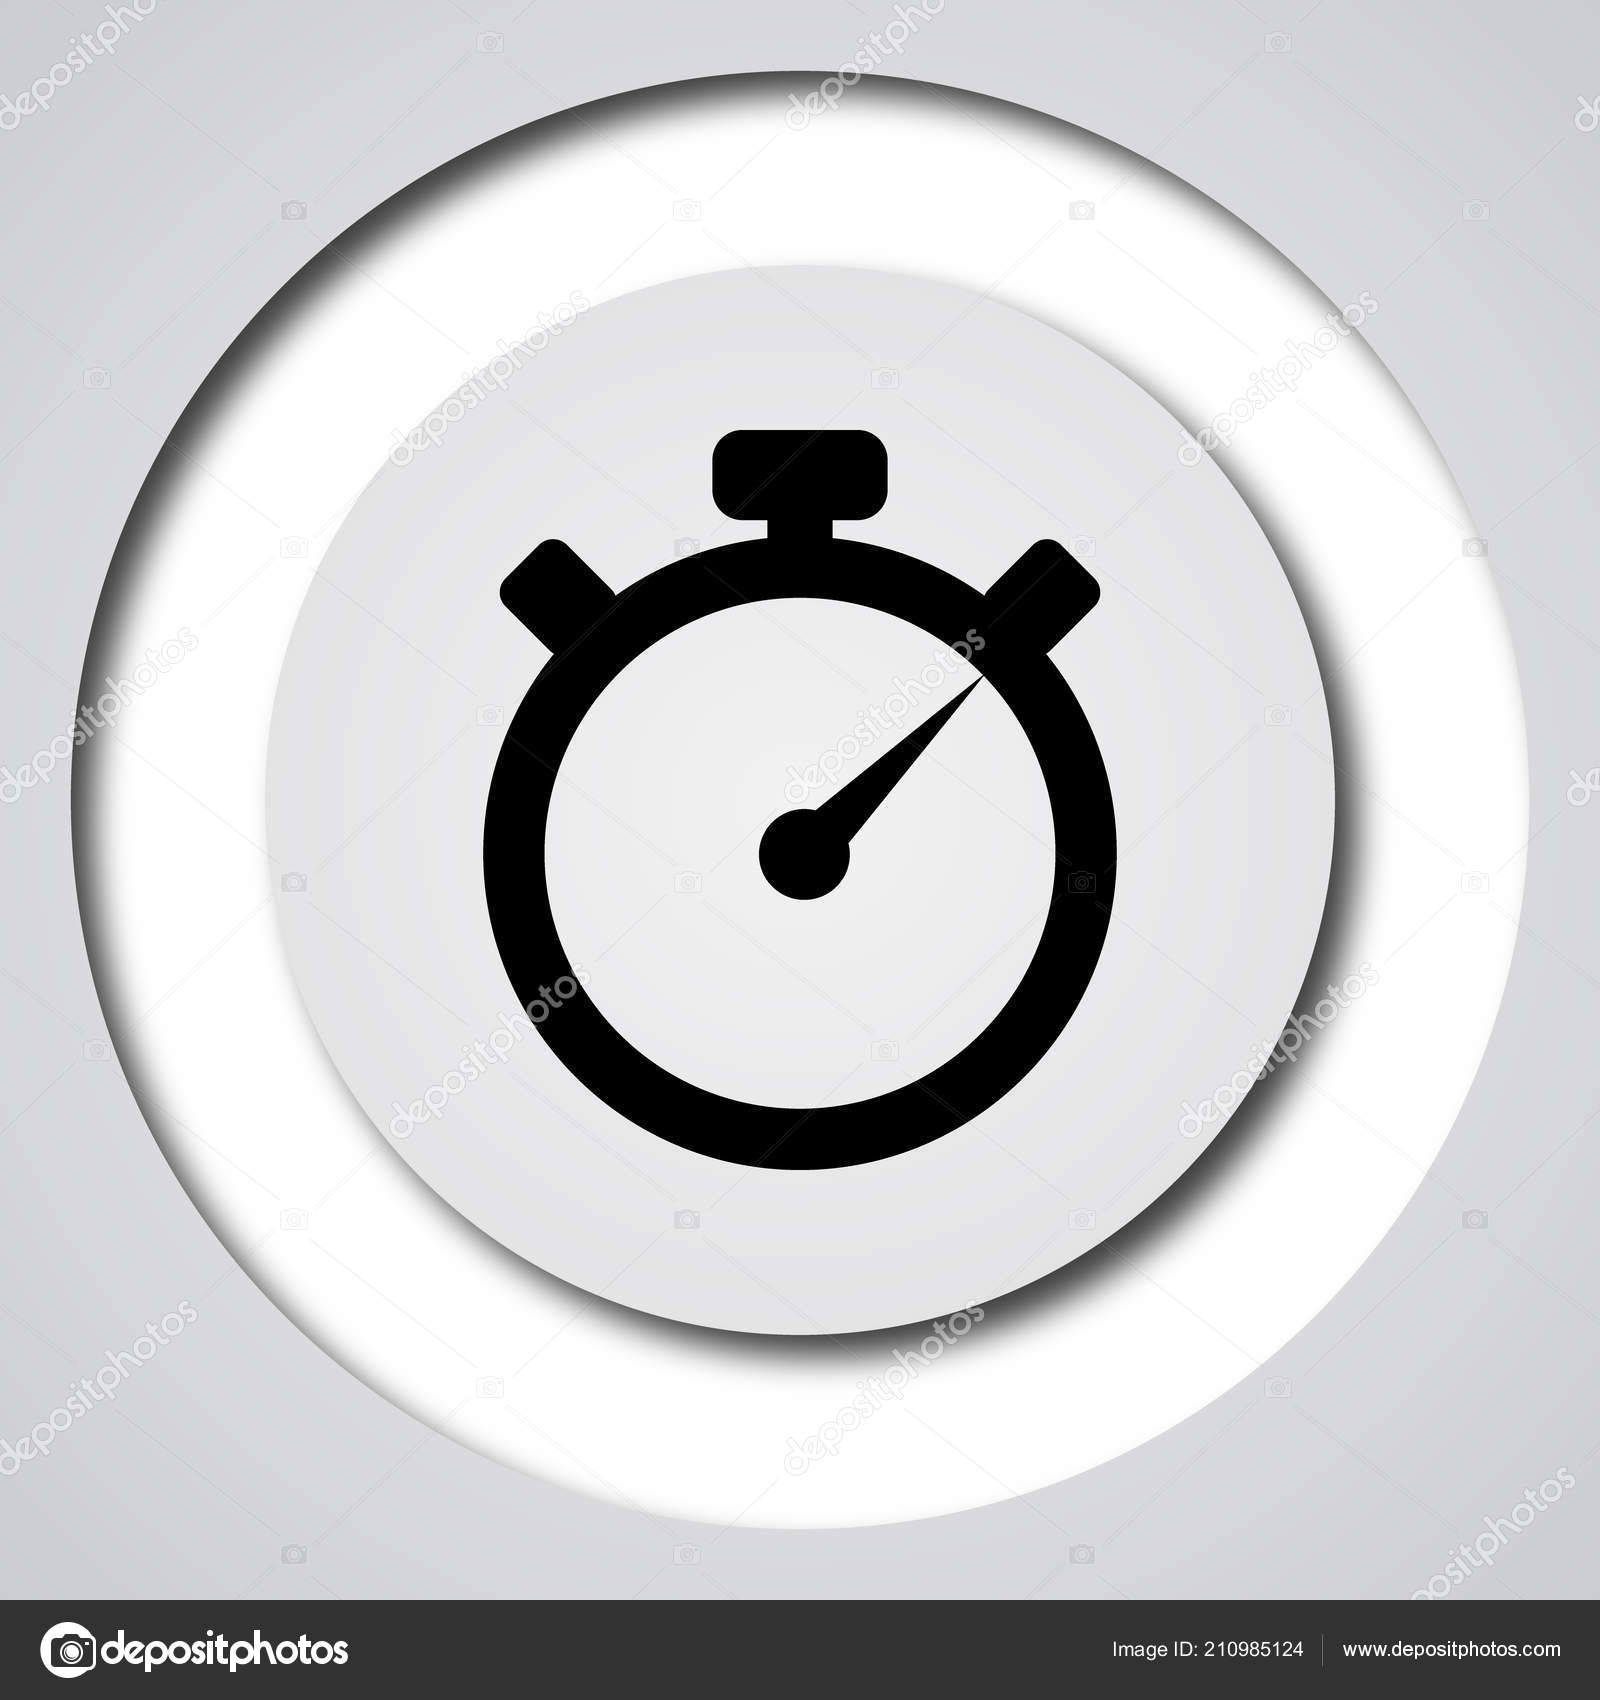 Timer icon — Stock Photo © valentint #210985124